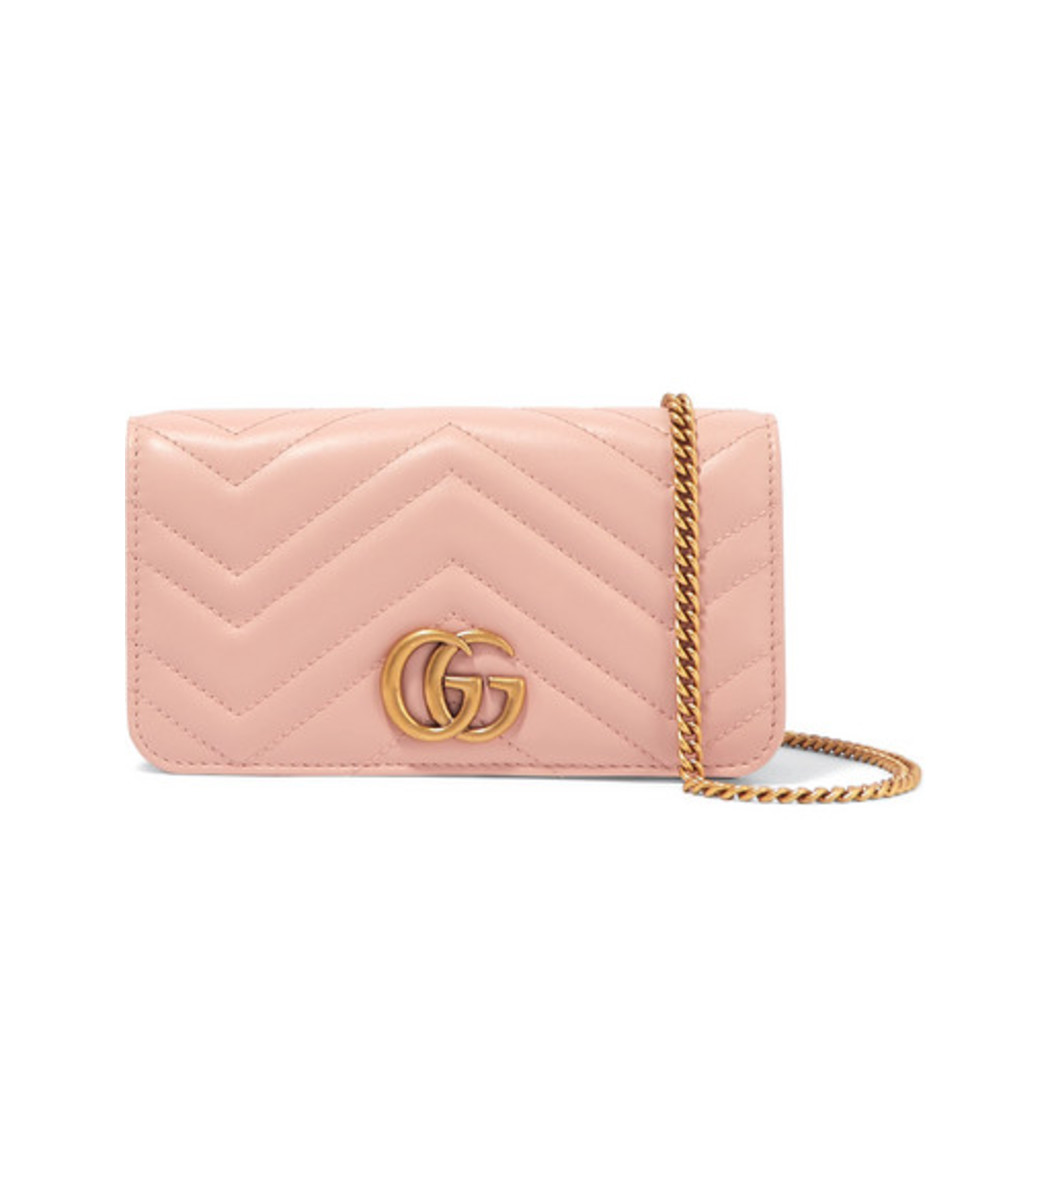 56249e5584f0 Gucci GG Marmont Mini Quilted Leather Shoulder Bag - ShopBAZAAR